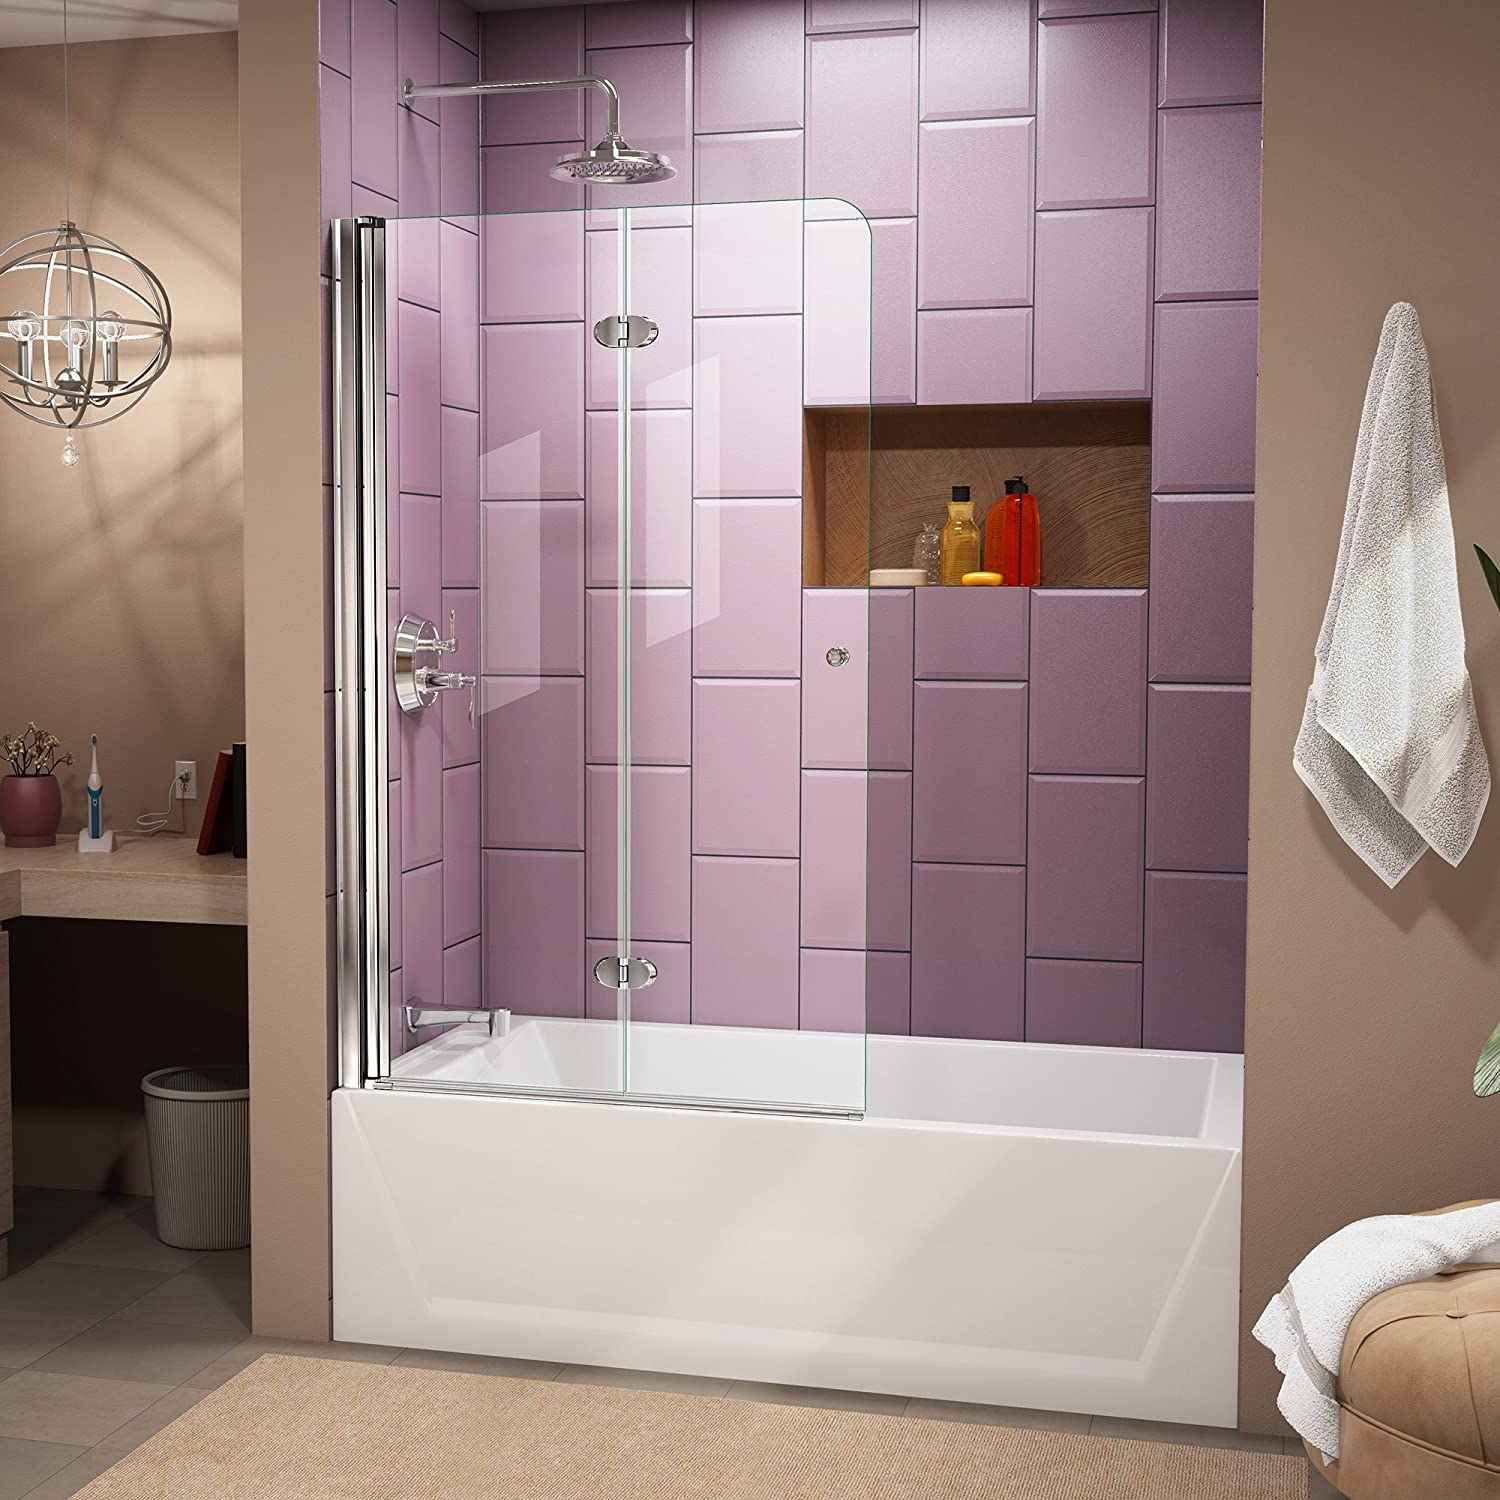 Bathtub Sliding Doors Amazon